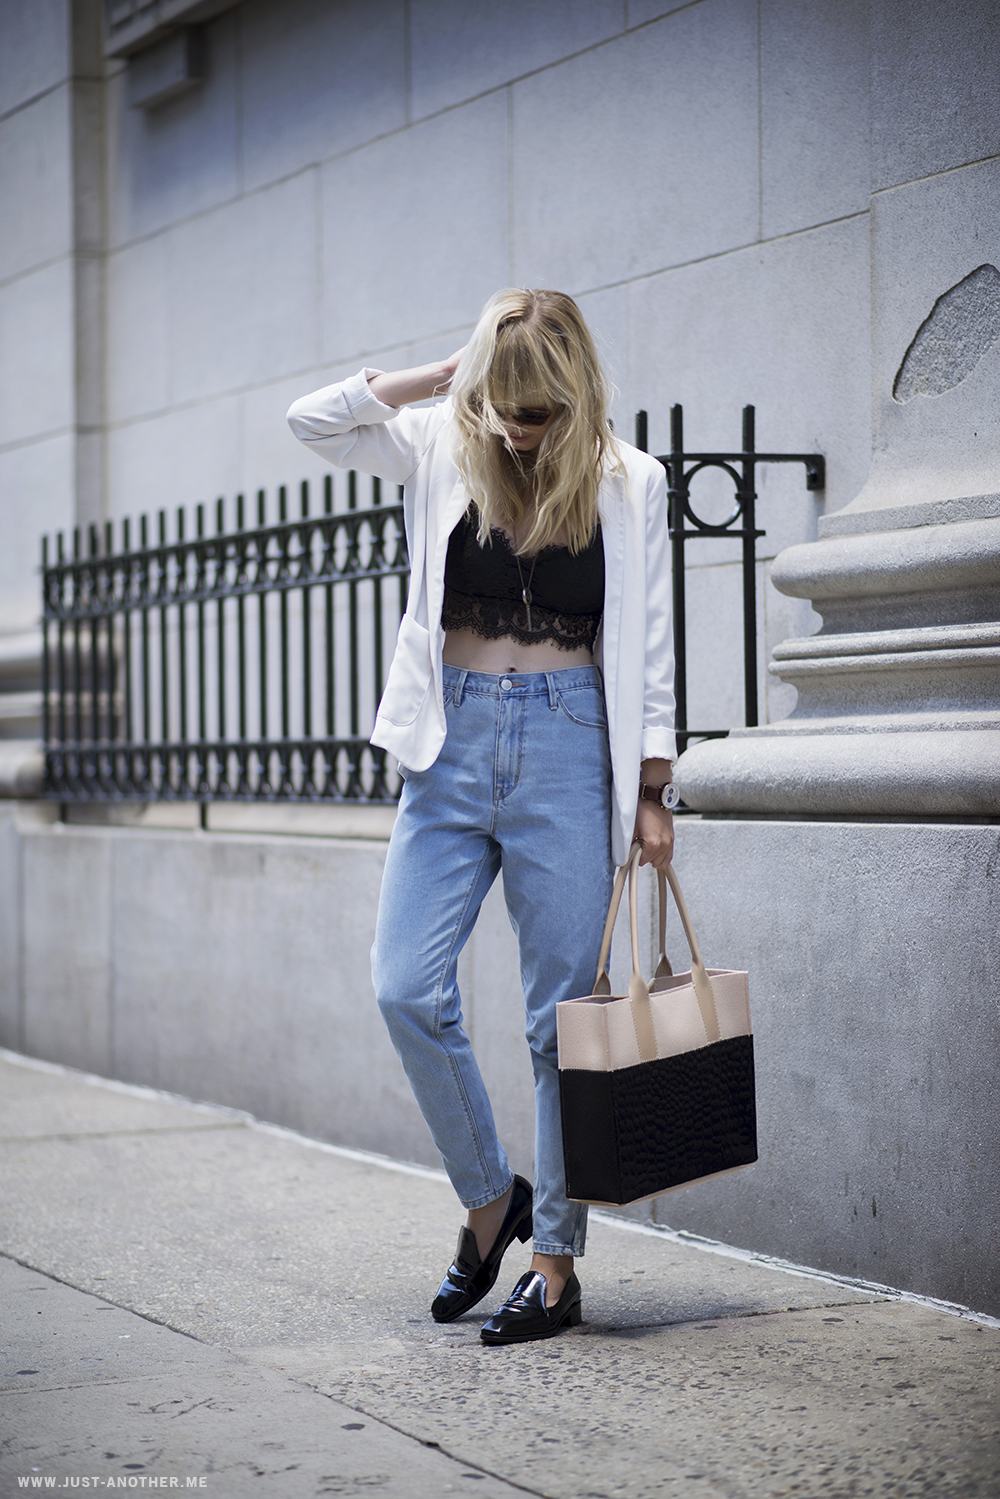 BACK IN THE CITY | Just Another Fashion Blog